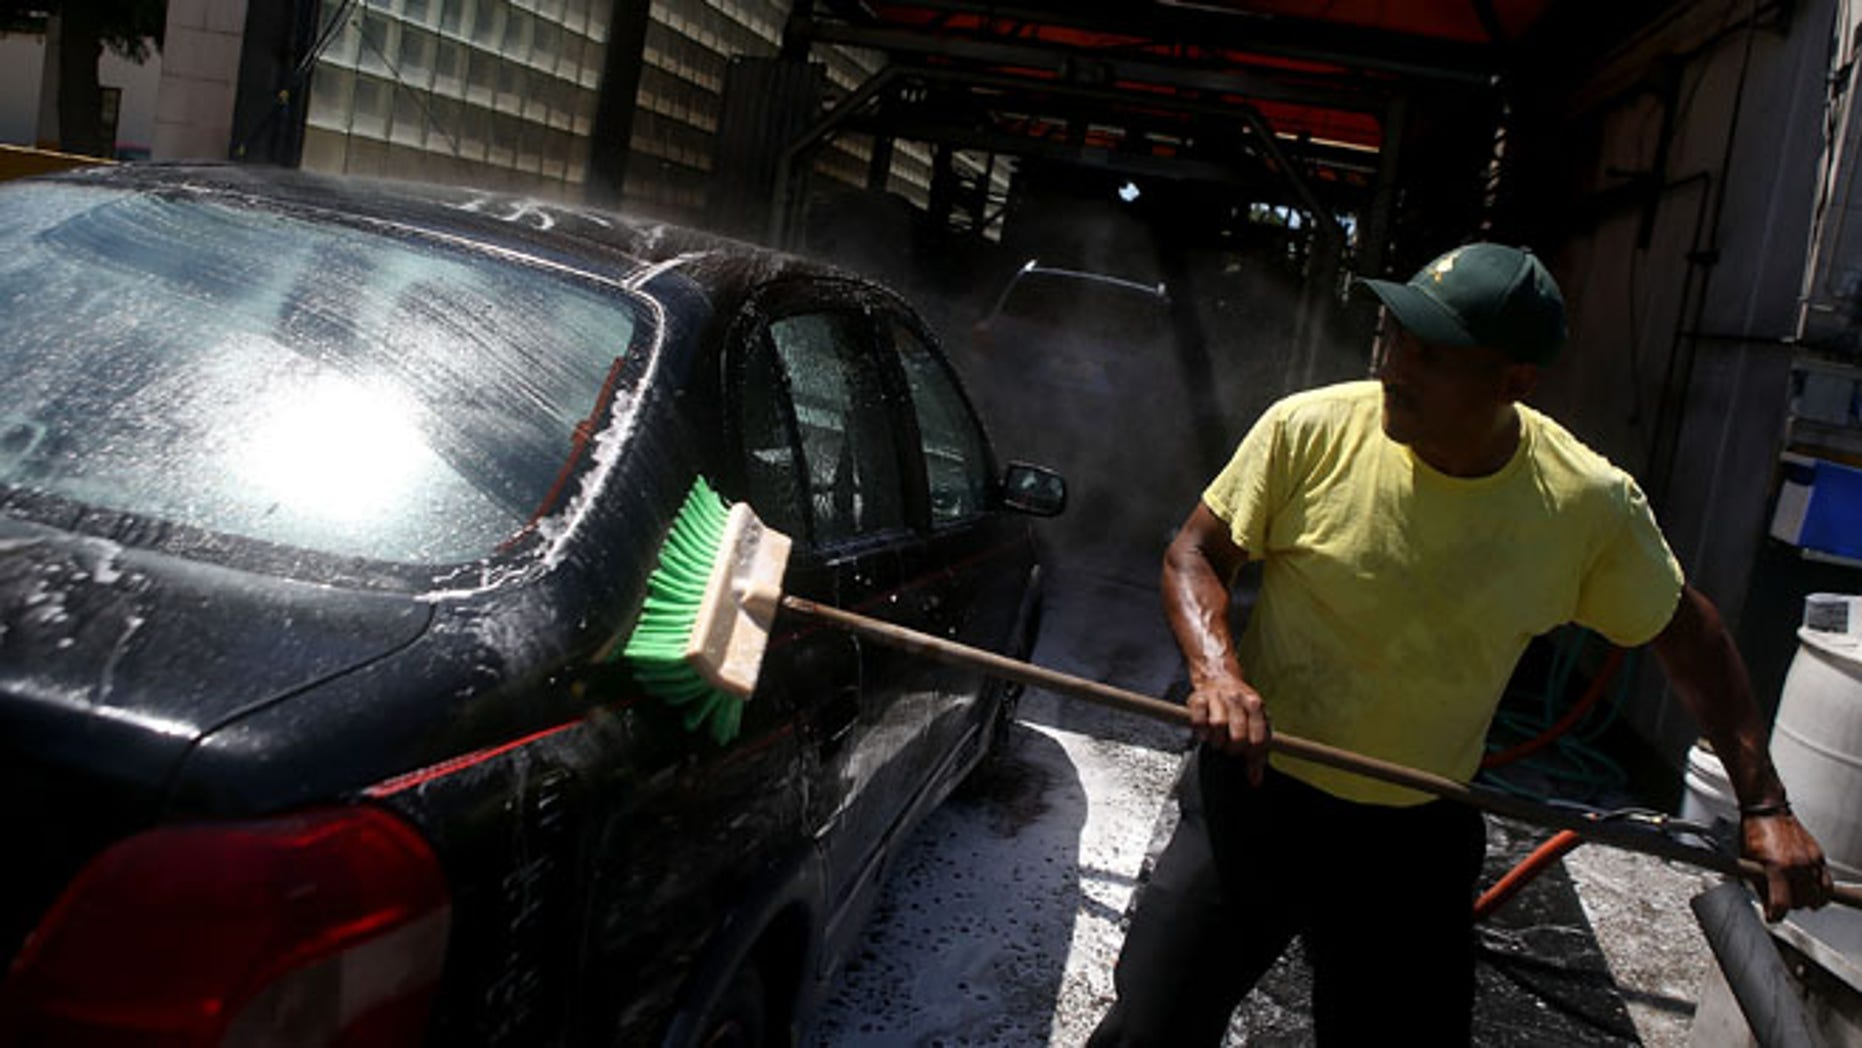 SAN MATEO, CA - JULY 29:  A worker uses a brushe to clean a car at Ducky's Car Wash on July 29, 2015 in San Mateo, California. As California endures its fourth year of severe drought and state water officials have implemented mandatory water reductions, San Mateo County Health System officials are encouraging residents to have their cars washed by a local professional car wash instead of washing your car at home with a garden hose. Most professional car washes use recycled water and average about 20 gallons or less per wash versus up to 150 gallons for a home wash.  (Photo by Justin Sullivan/Getty Images)